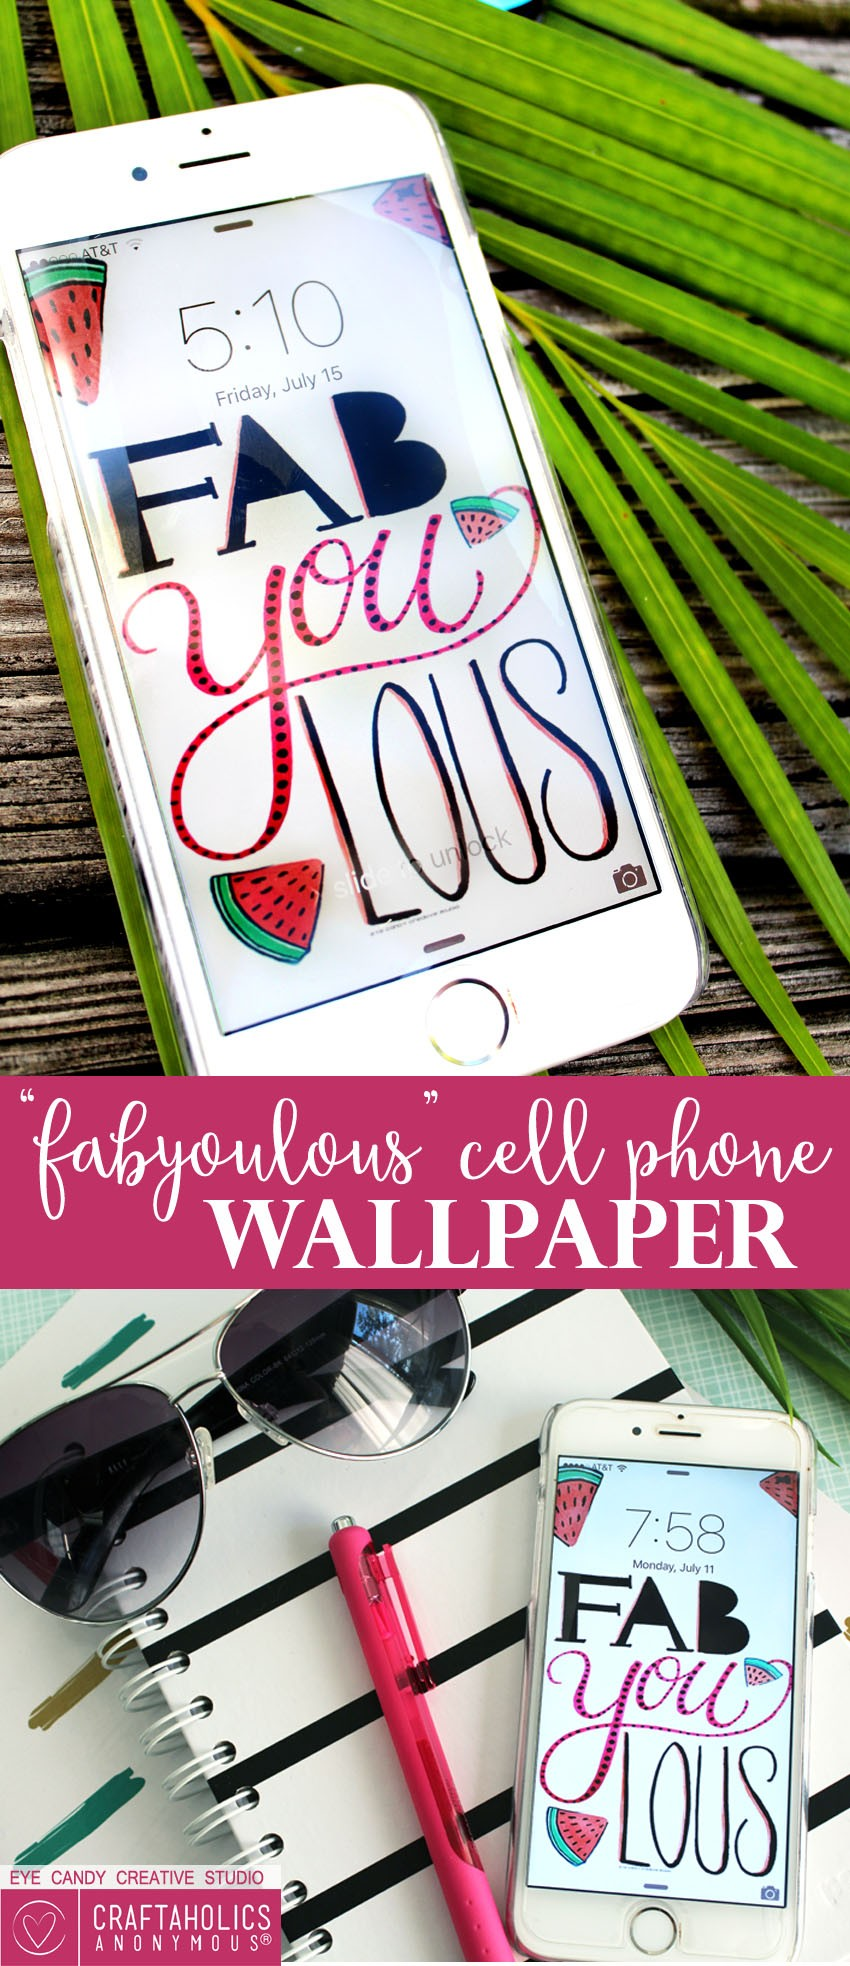 Free cell phone wallpaper download